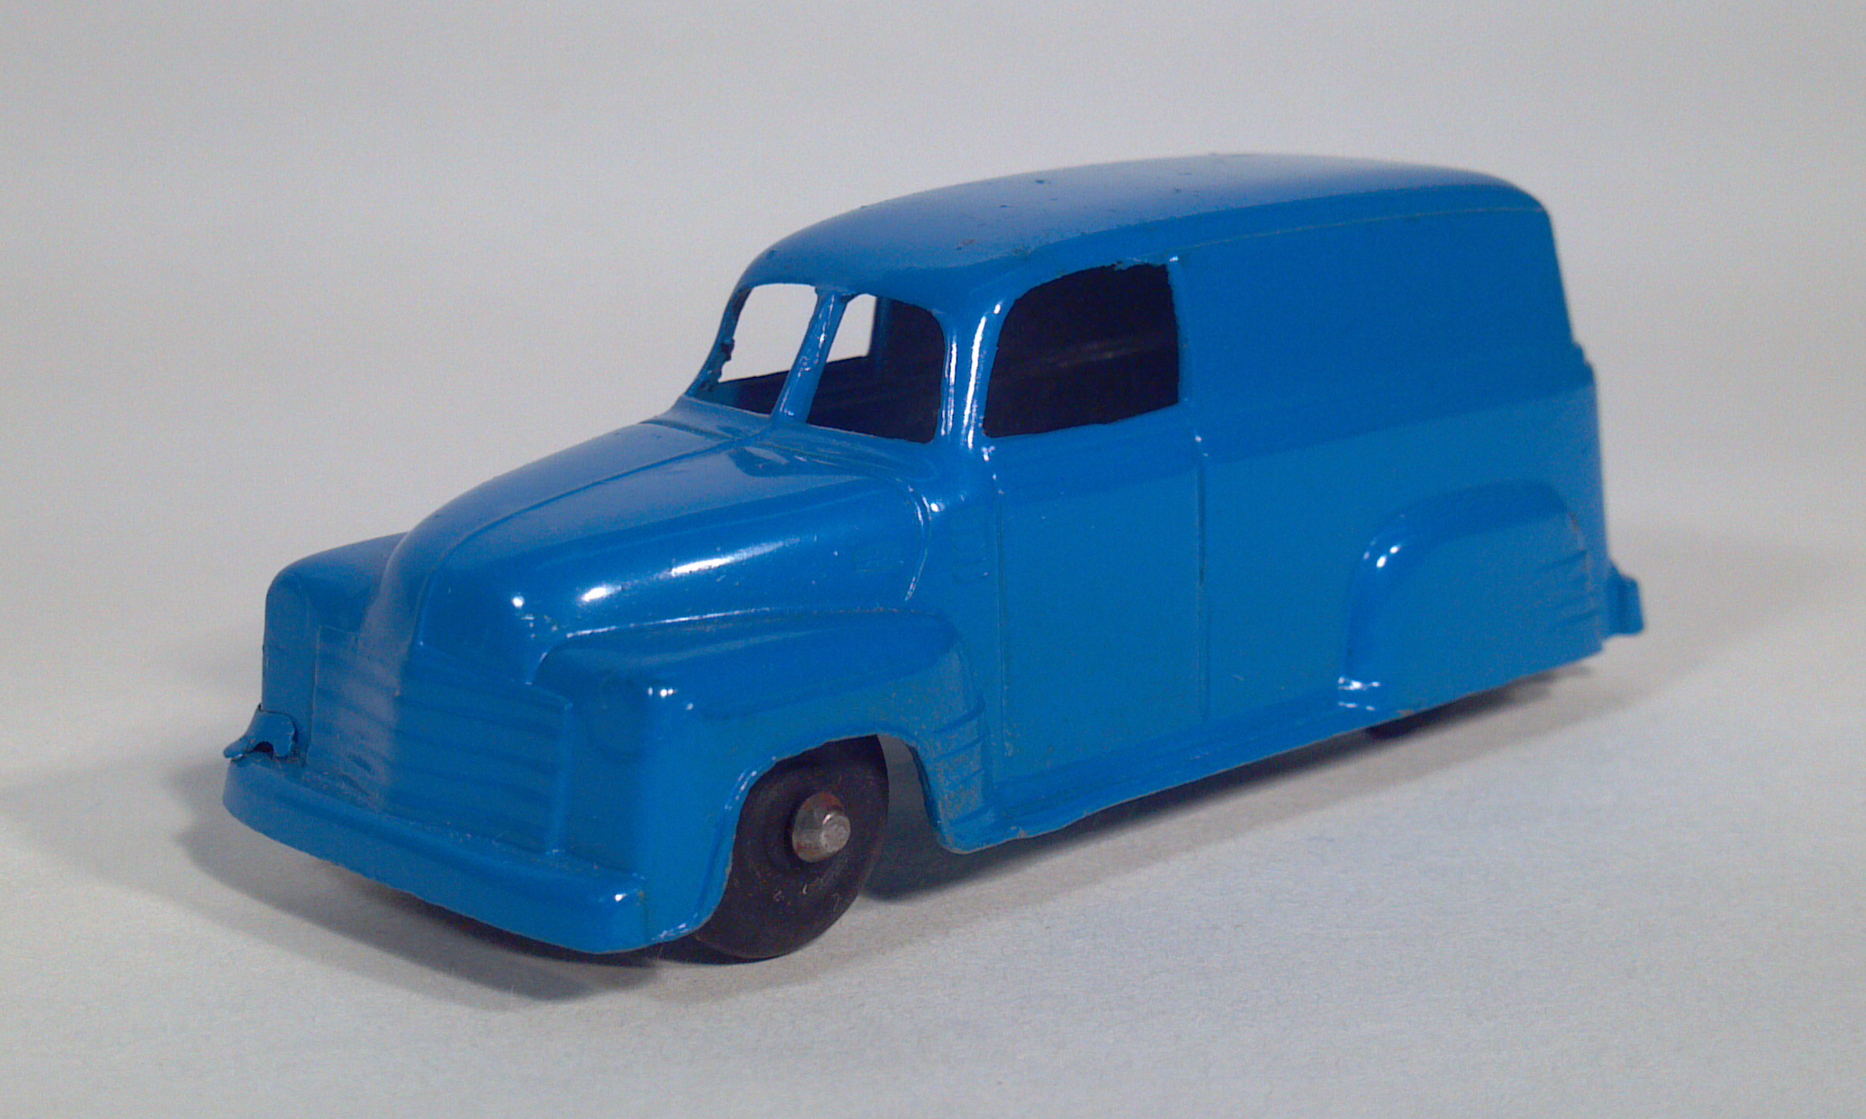 Post War Tootsietoy Diecast Toy Vehicles Scale Models Cars Trucks 1949 Chevy Panel Van Vans Missing